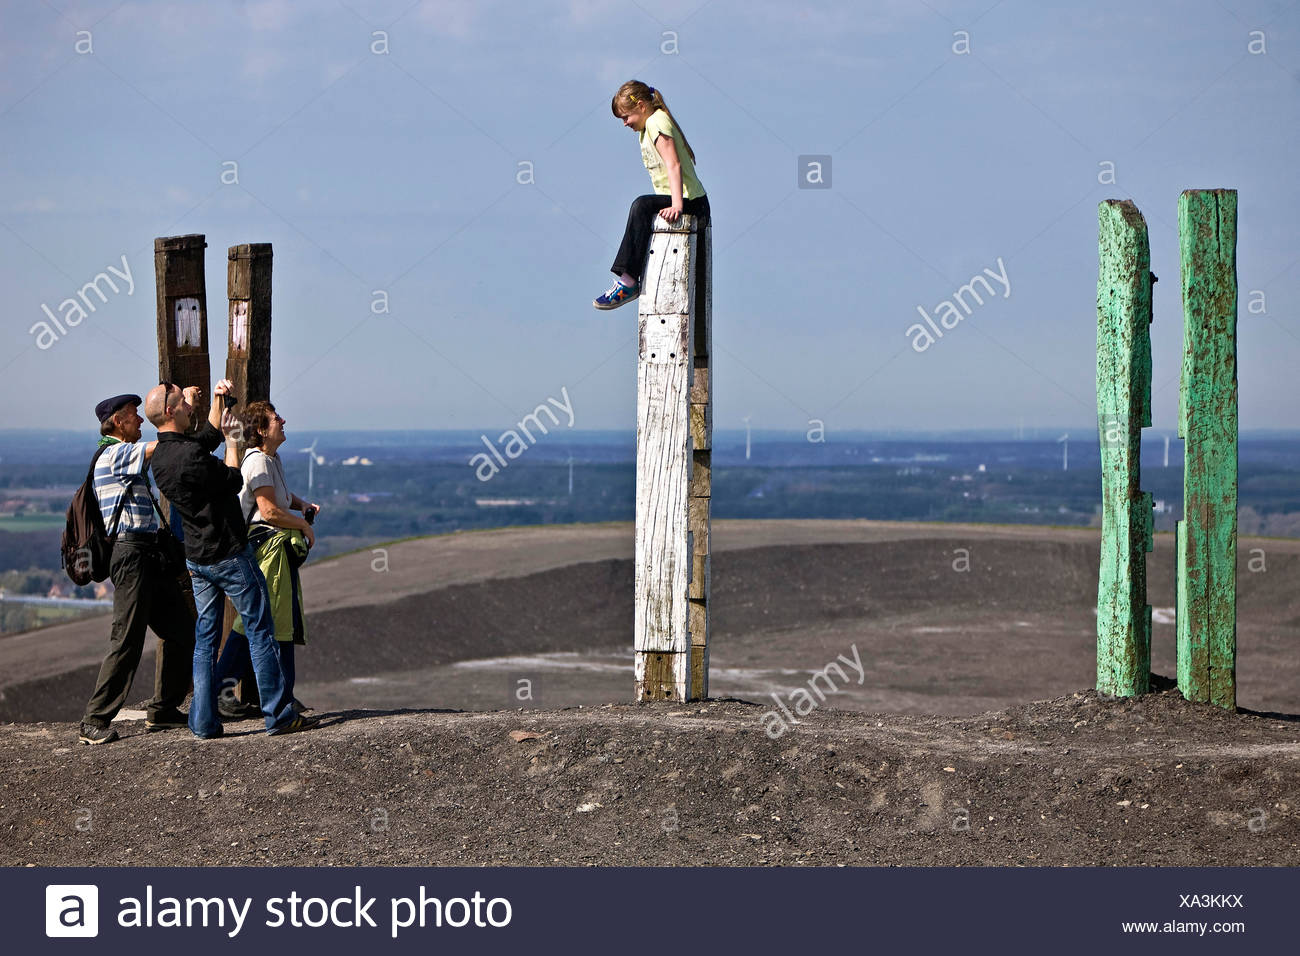 girl sitting on a totem and people taking photos at stockpile Haniel, Germany, North Rhine-Westphalia, Bottrop - Stock Image